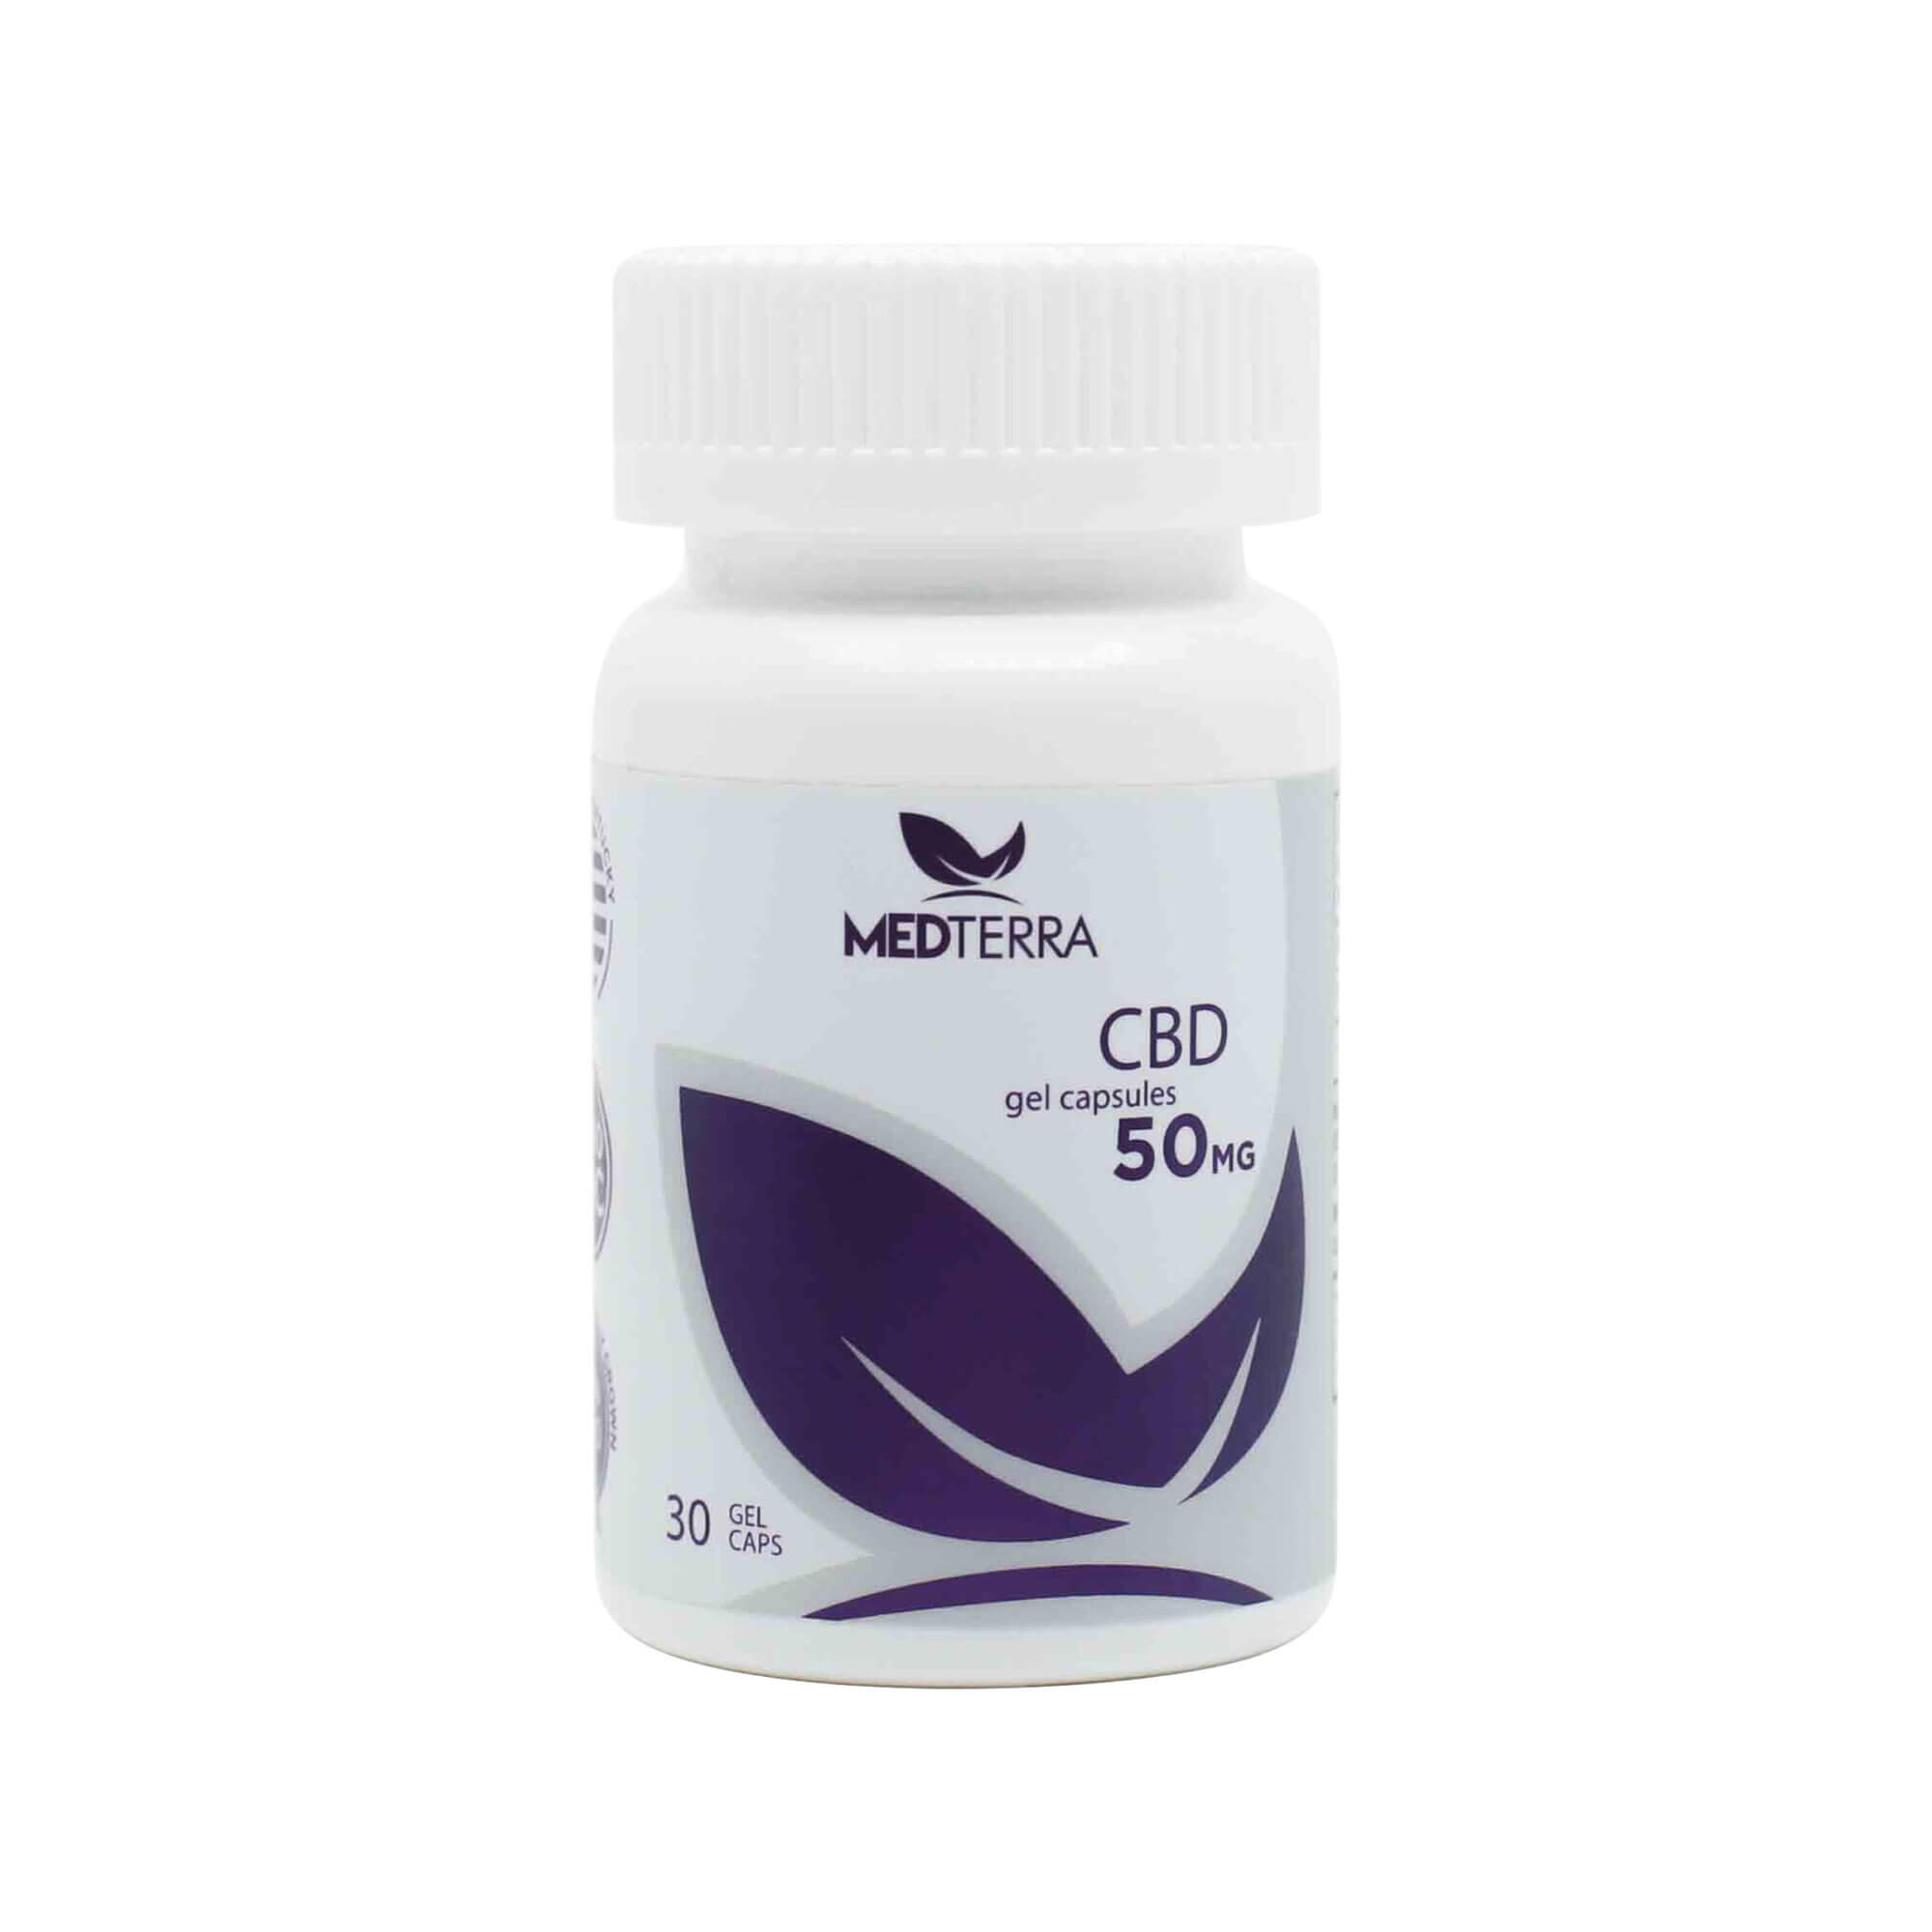 medterra cbd coupon code